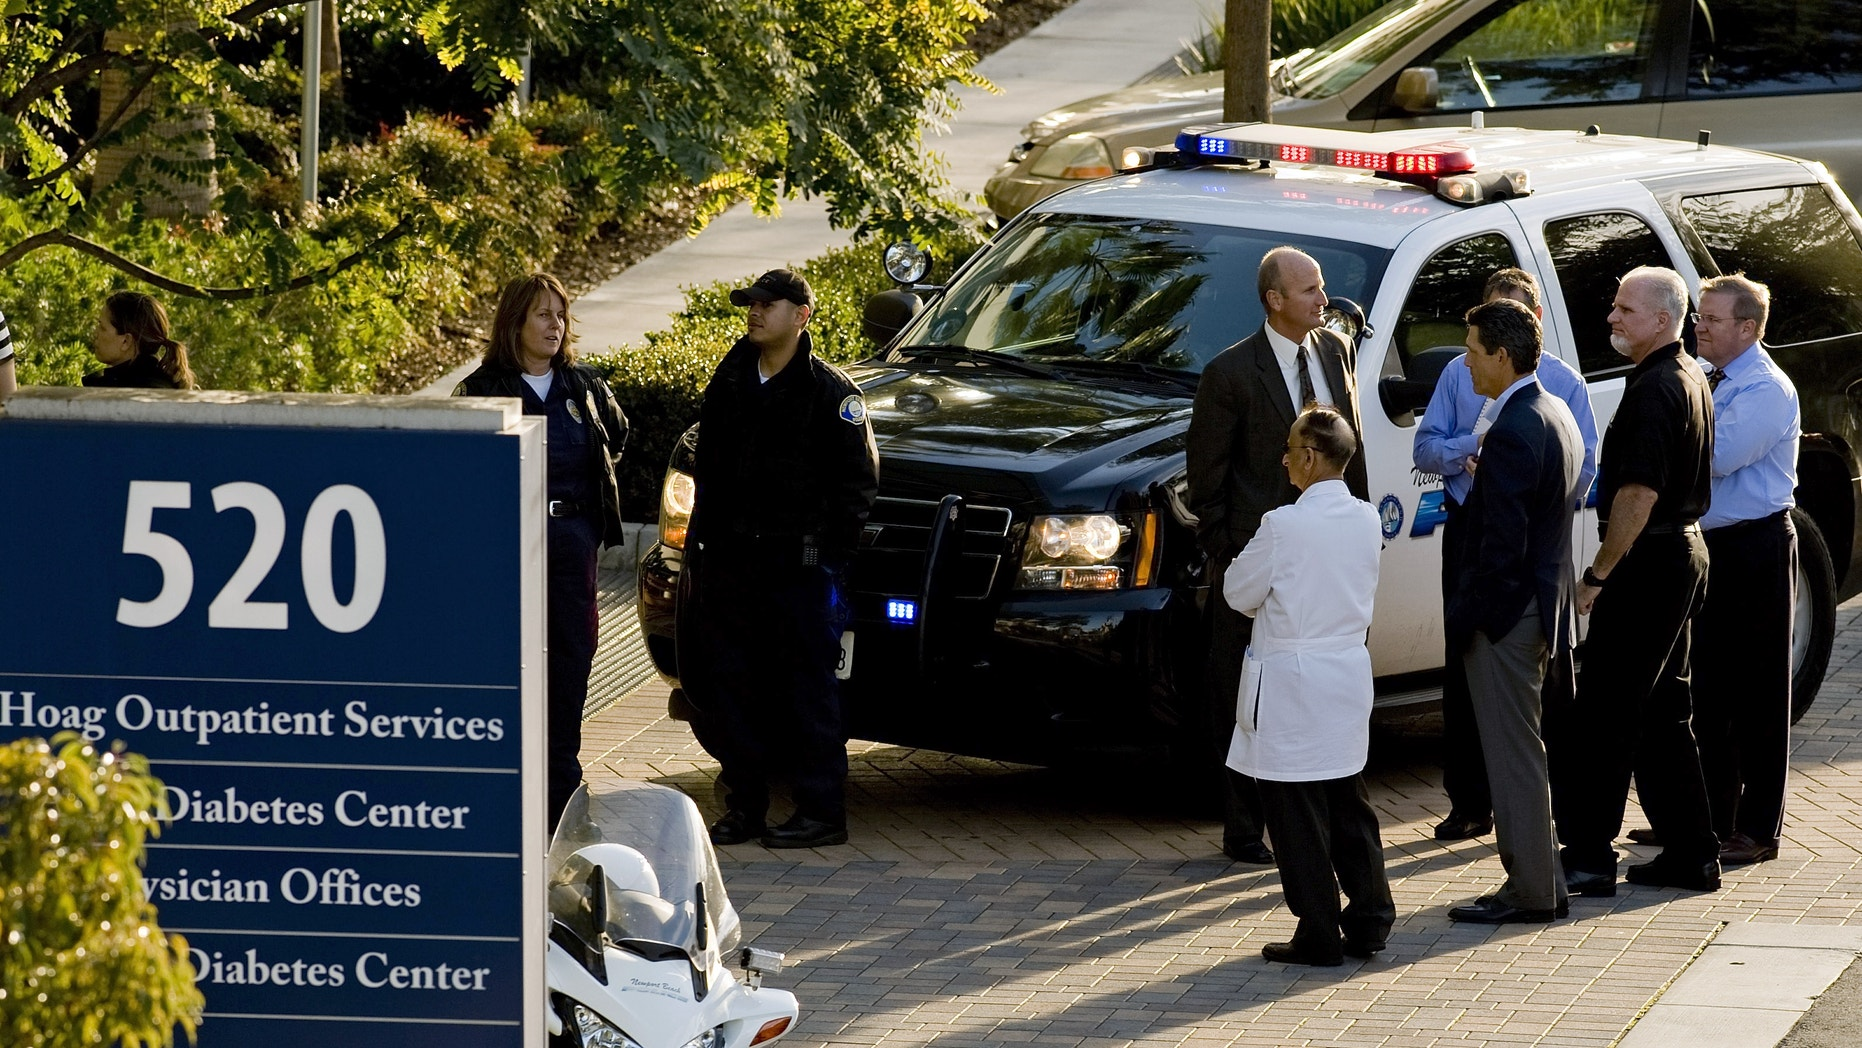 28, 2013: Police and medical personnel stand outside a medical office near